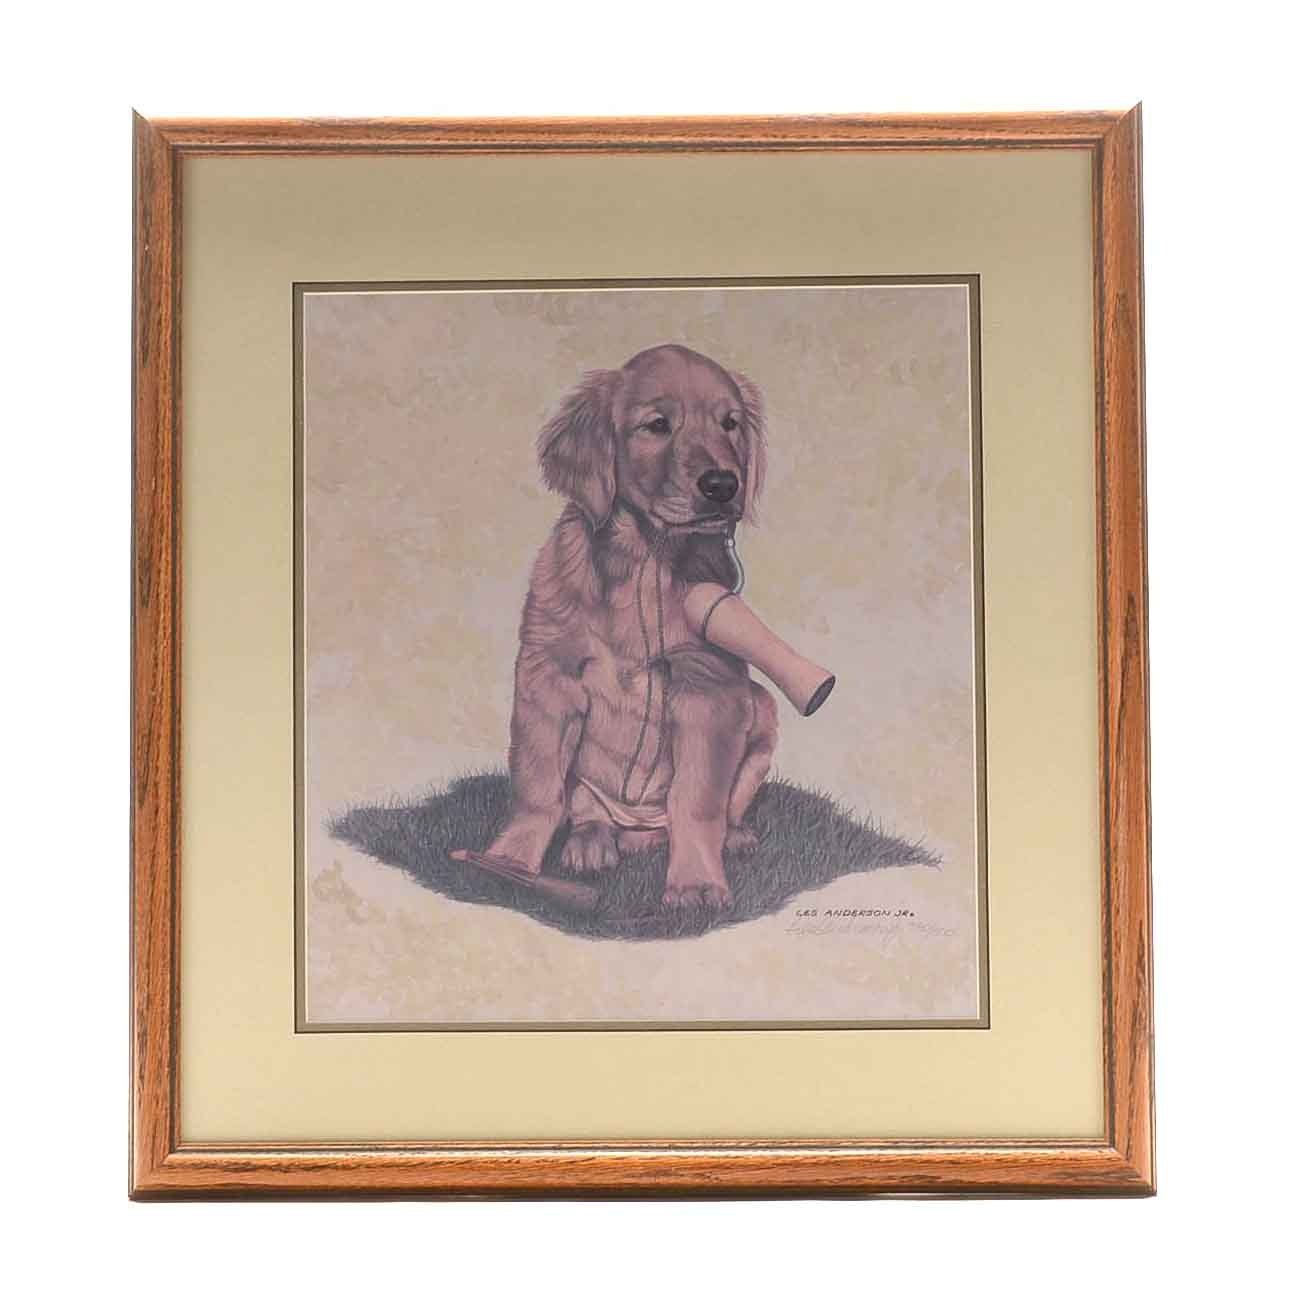 Les Anderson Jr. Limited Edition Offset Lithograph of a Dog